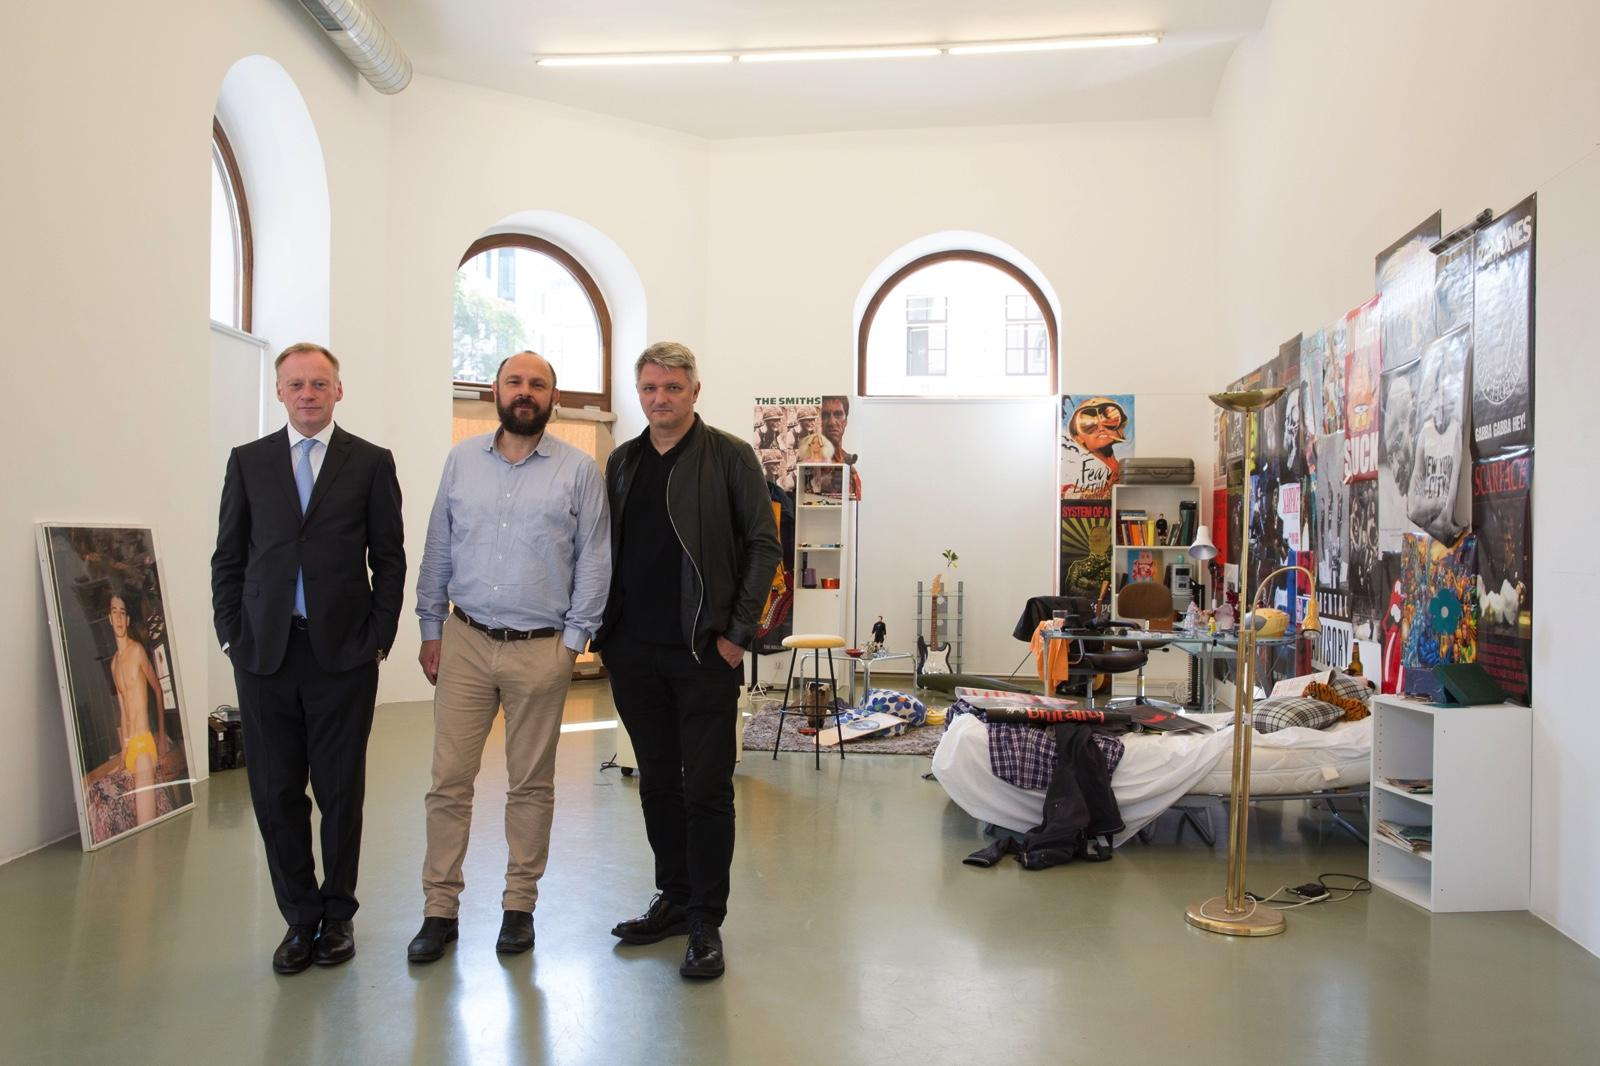 Galerie Crone's Andreas Osarek and Markus Peichl with curator Dirk  Schönberger Photo: eSeL